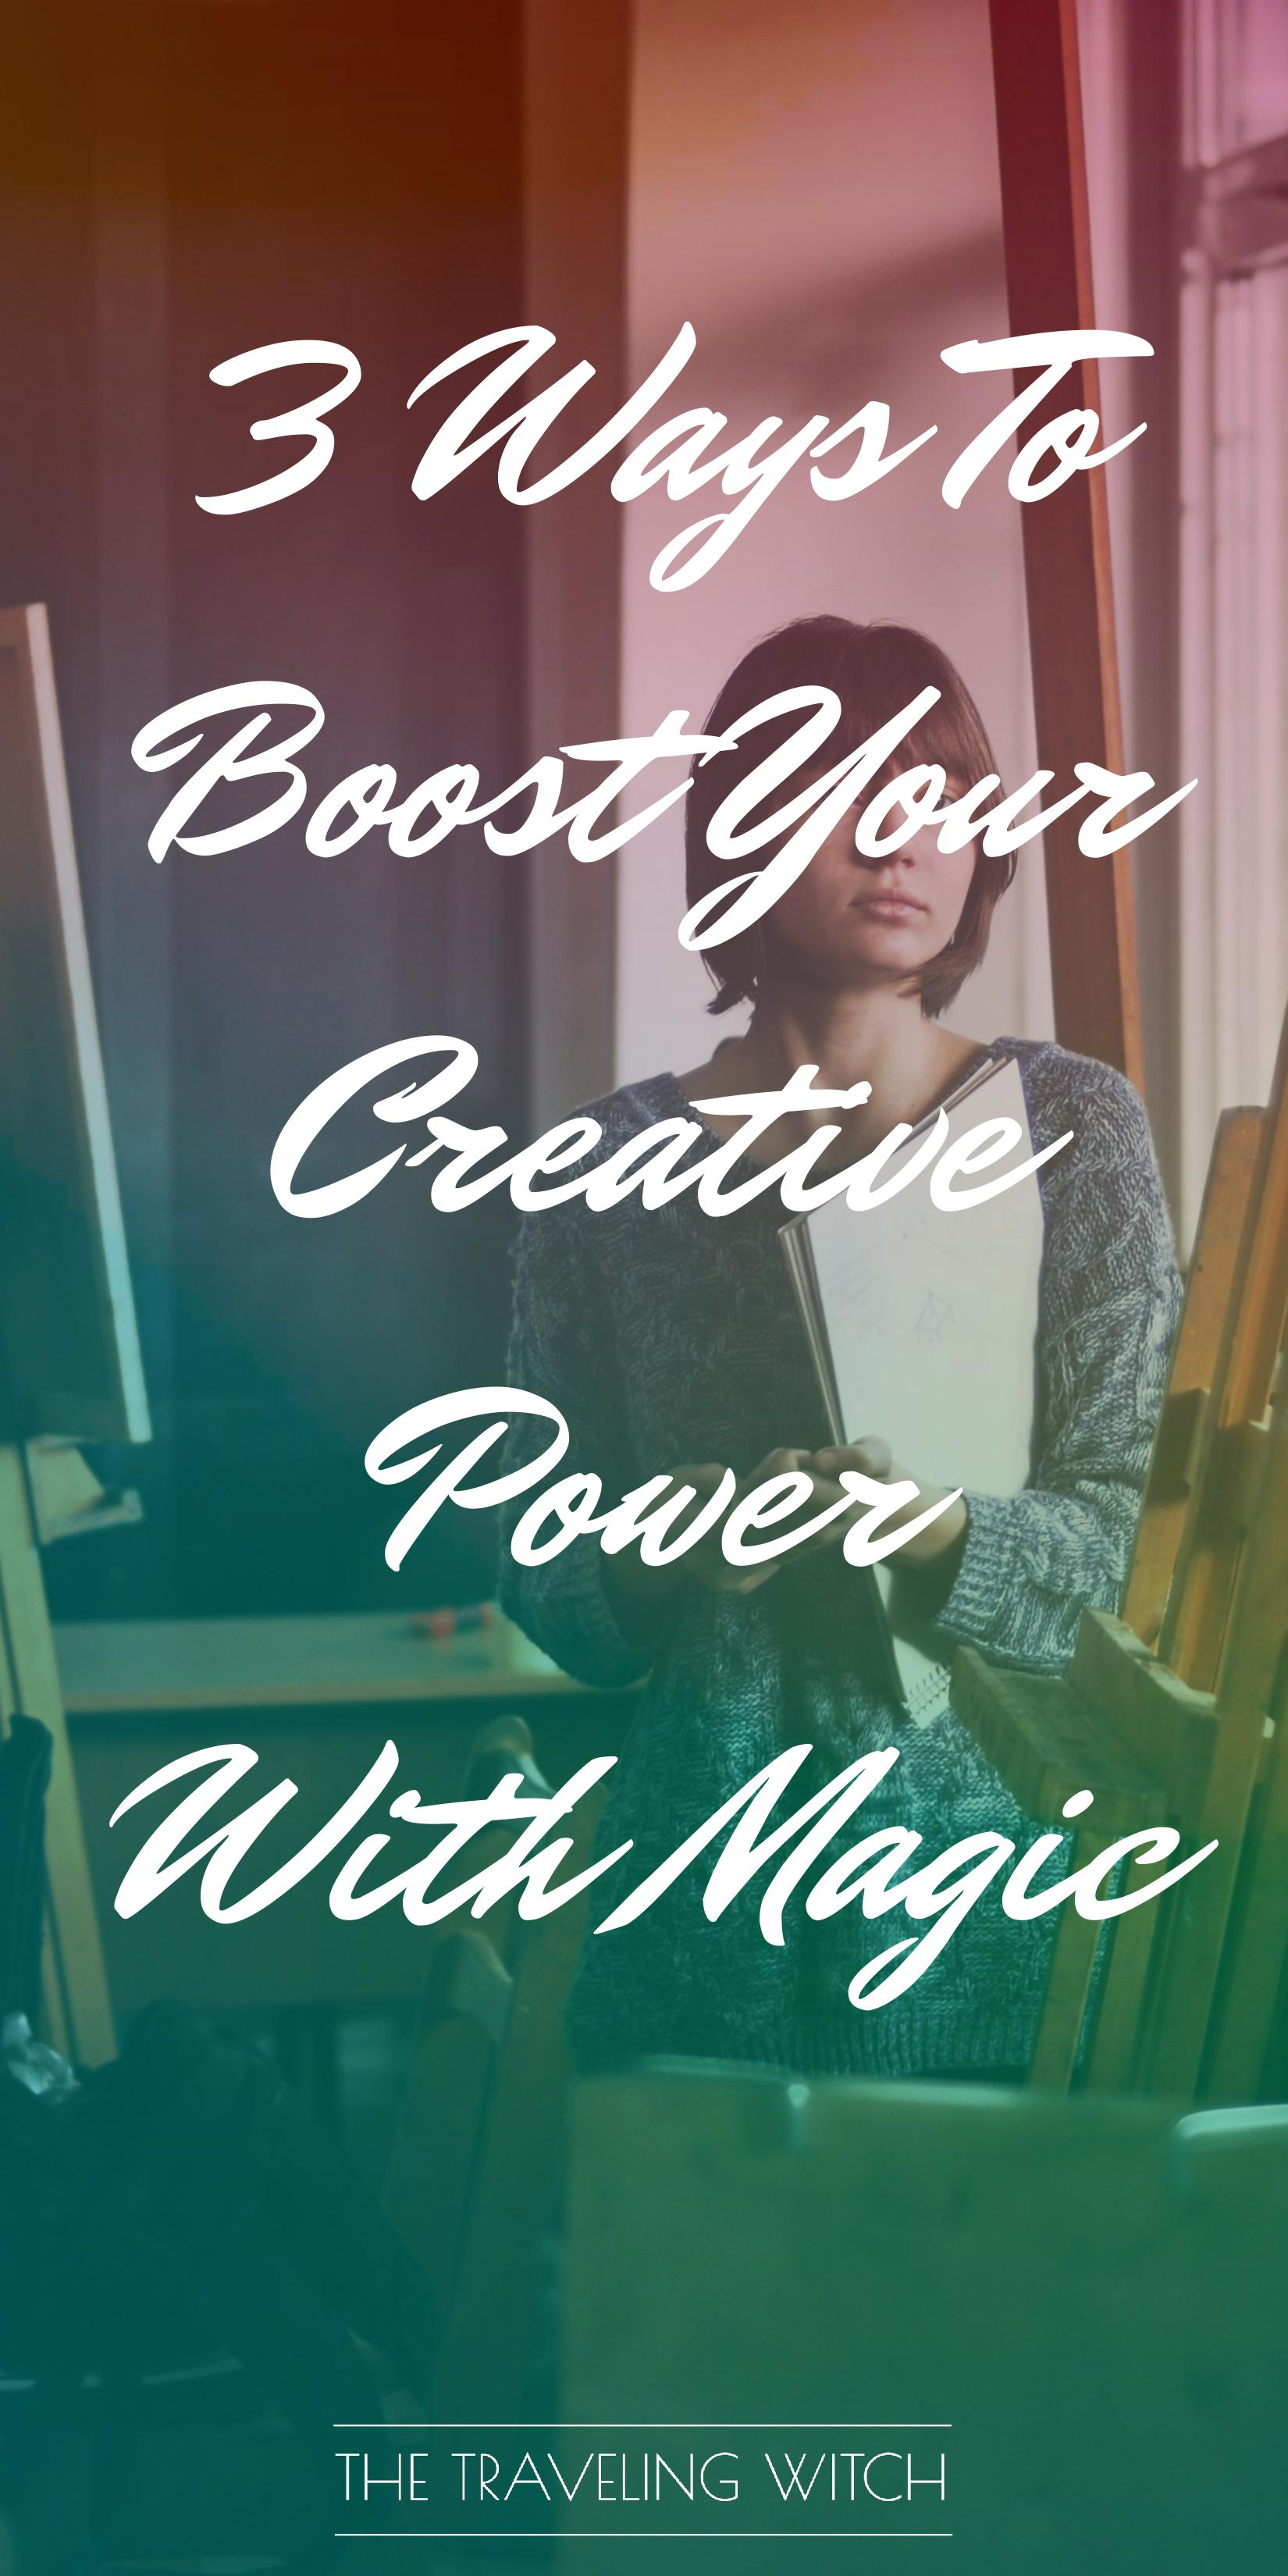 3 Ways To Boost Your Creative Power With Magic // Witchcraft // The Traveling Witch